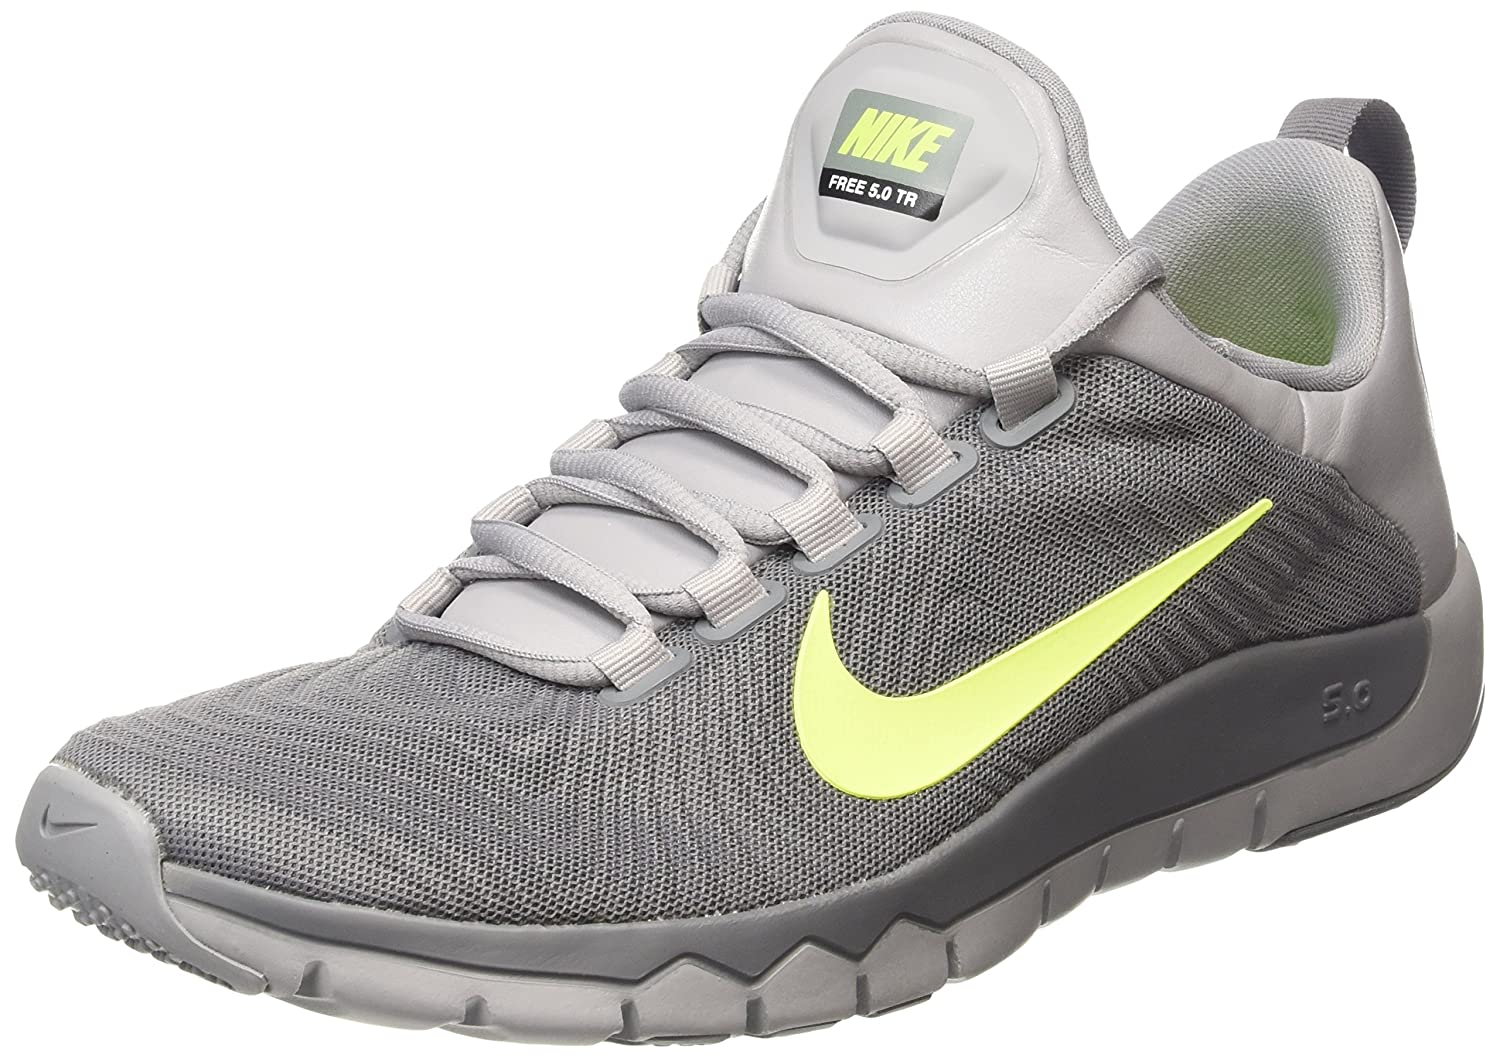 Nike Free Trainer 5.0 V5 Mens Trainers Mens Trainers Shop Mens Trainers COLOUR-black/grey/lime